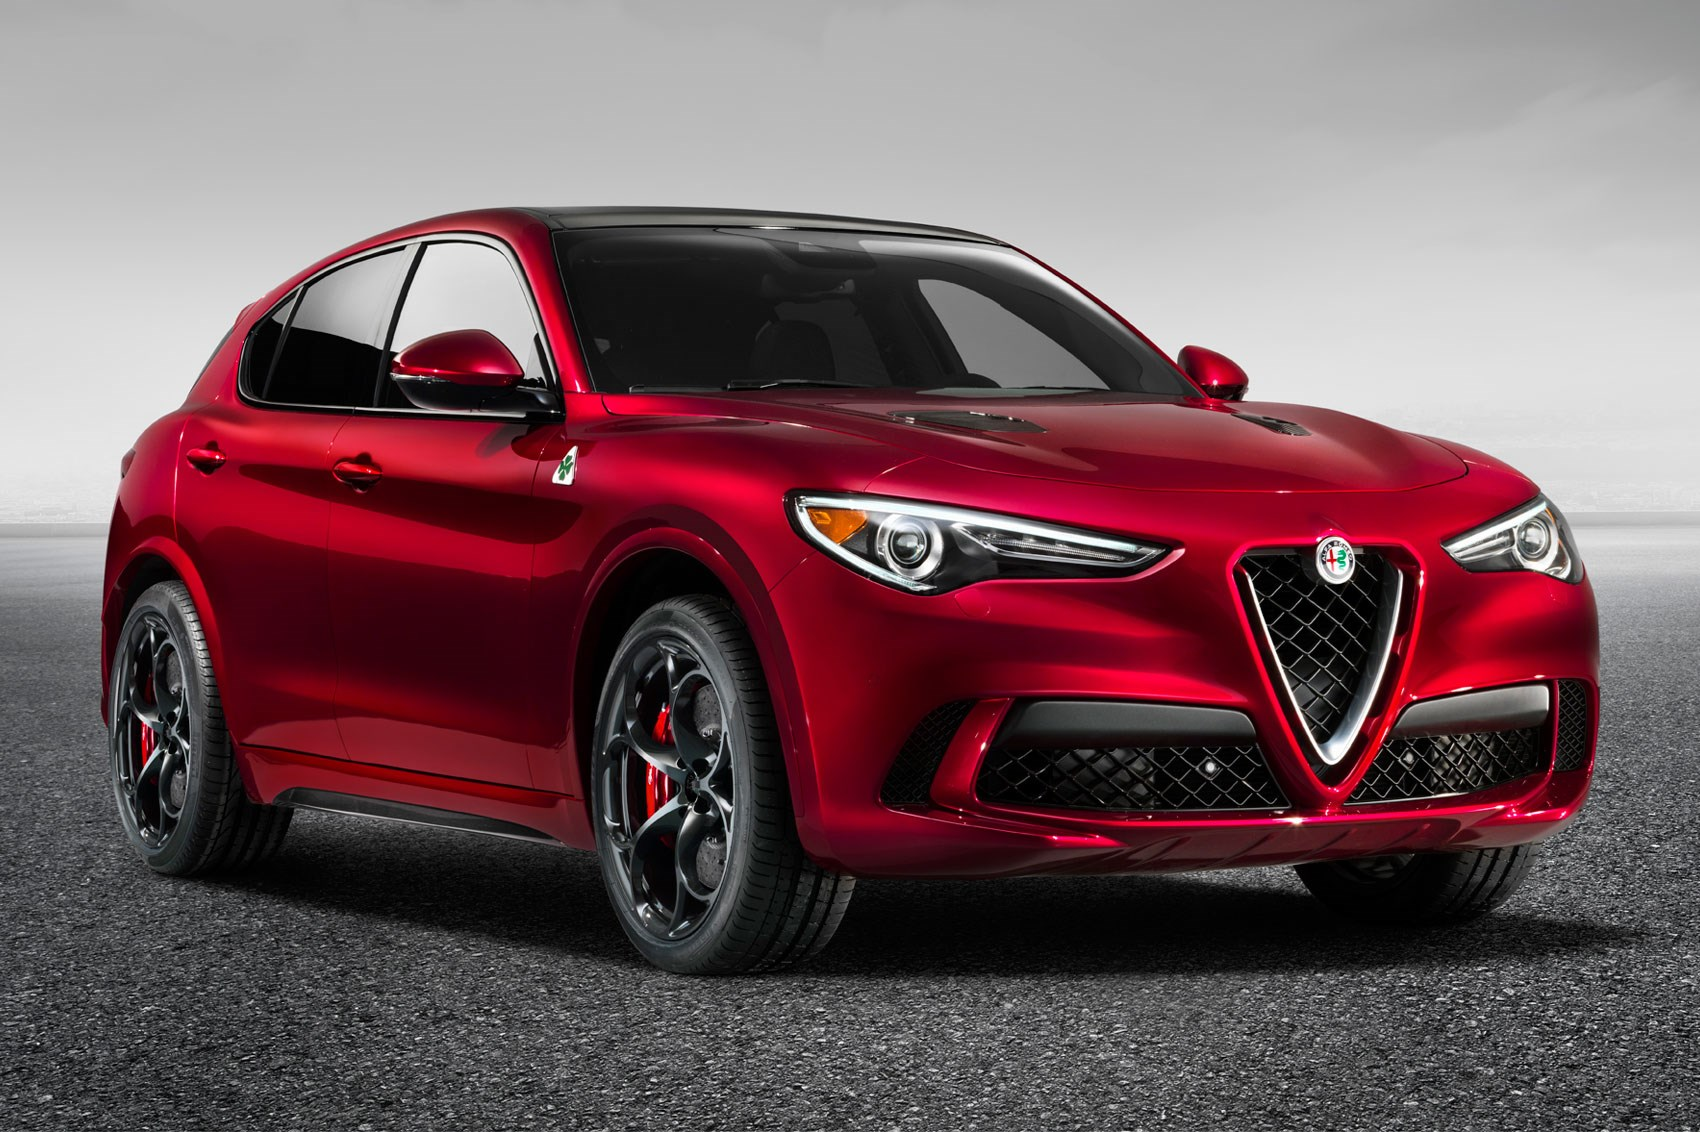 new alfa romeo stelvio quadrifoglio suv revealed latest. Black Bedroom Furniture Sets. Home Design Ideas